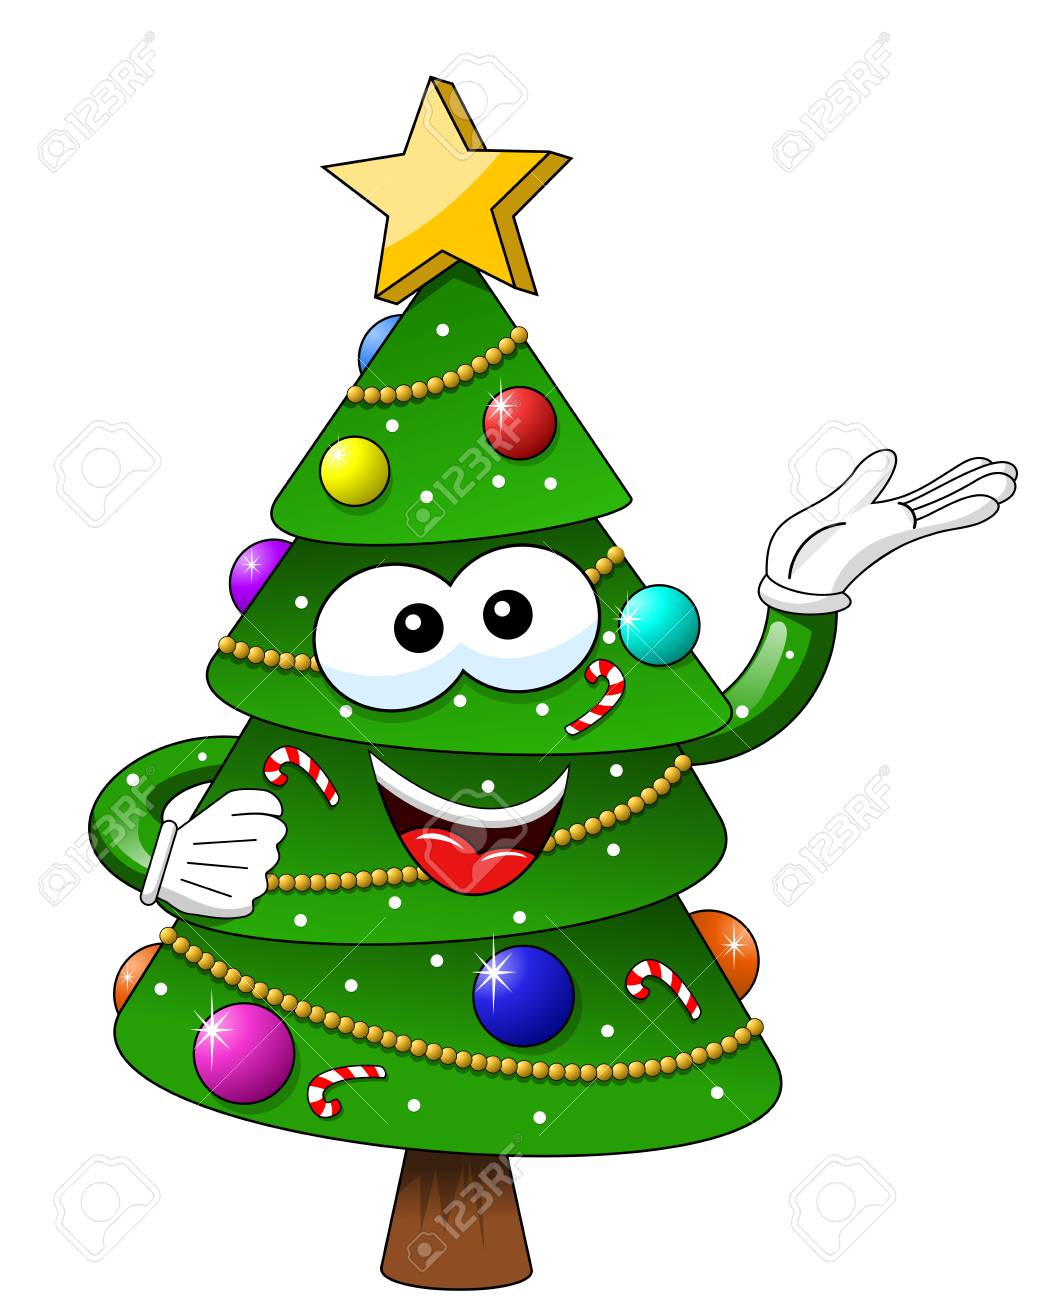 Christmas Tree Mascot Character Presenting Isolated Royalty Free Cliparts Vectors And Stock Illustration Image 91595615